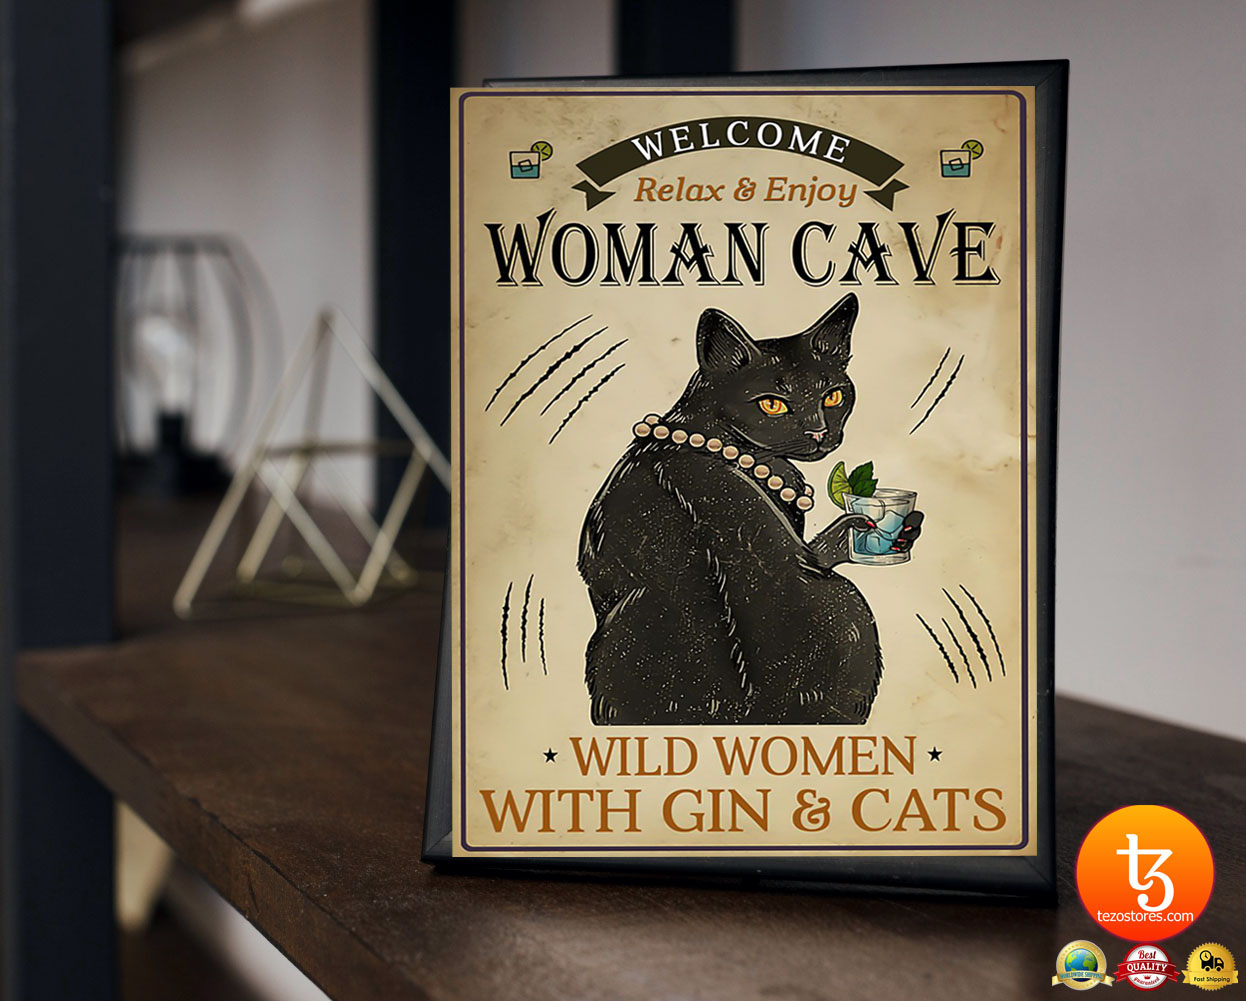 Welcome relax enjoy woman cave will women with gin and cats poster 19